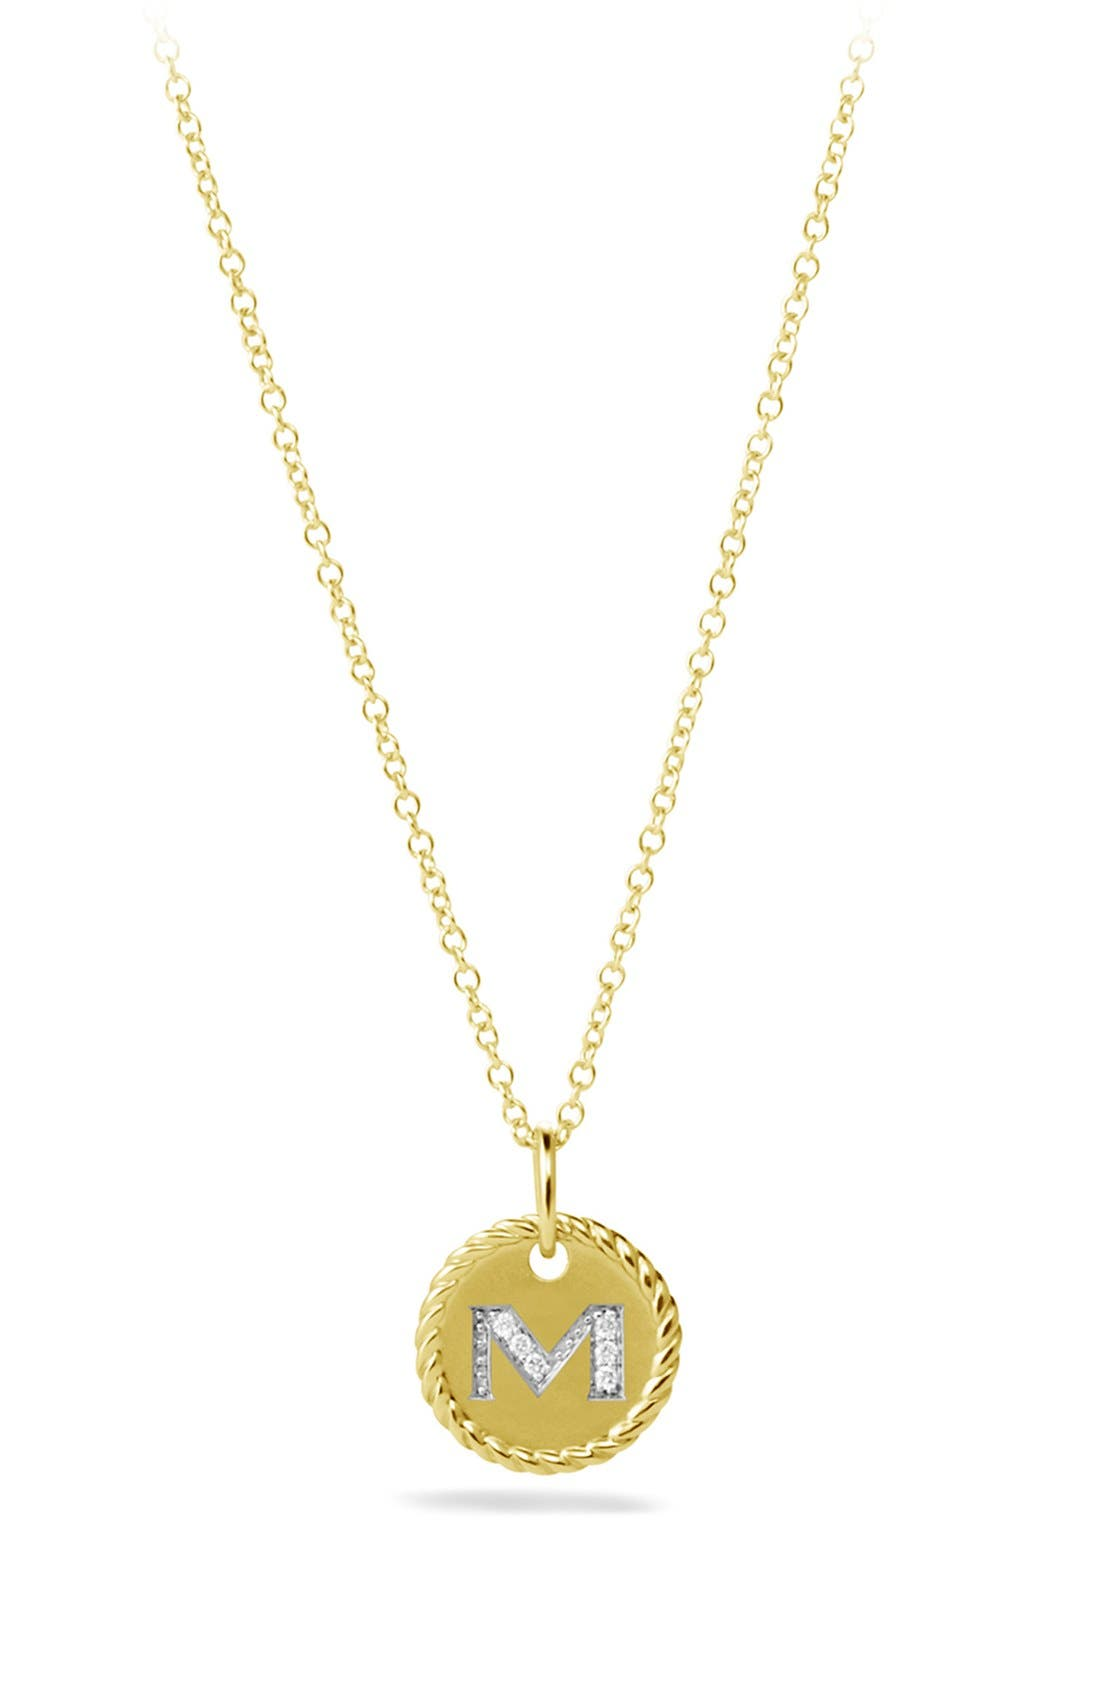 DAVID YURMAN Cable Collectibles Initial Pendant with Diamonds in Gold on Chain